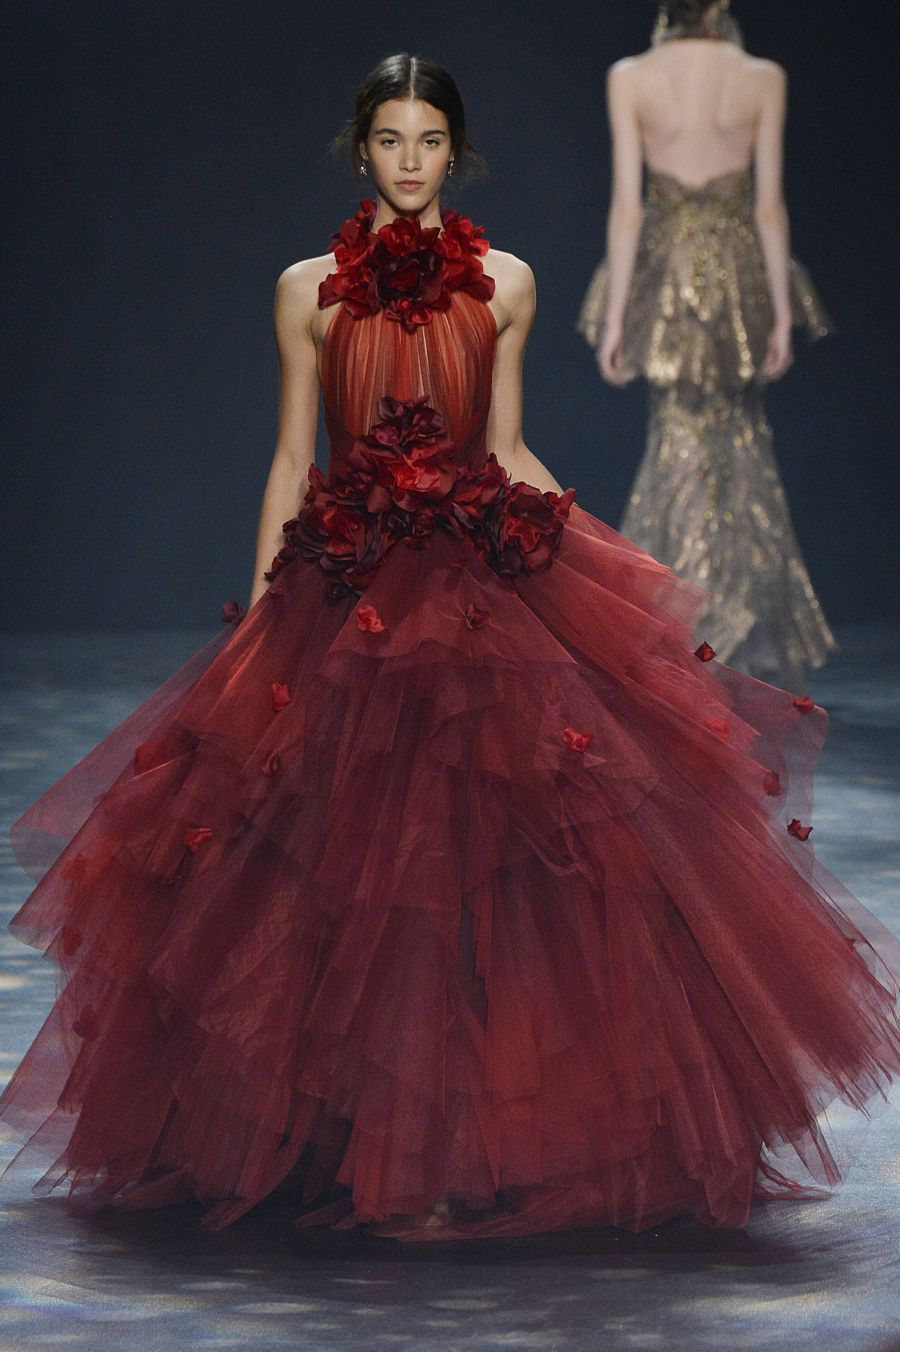 NYFW Gowns We Can't Wait to See Rock the Red Carpet in